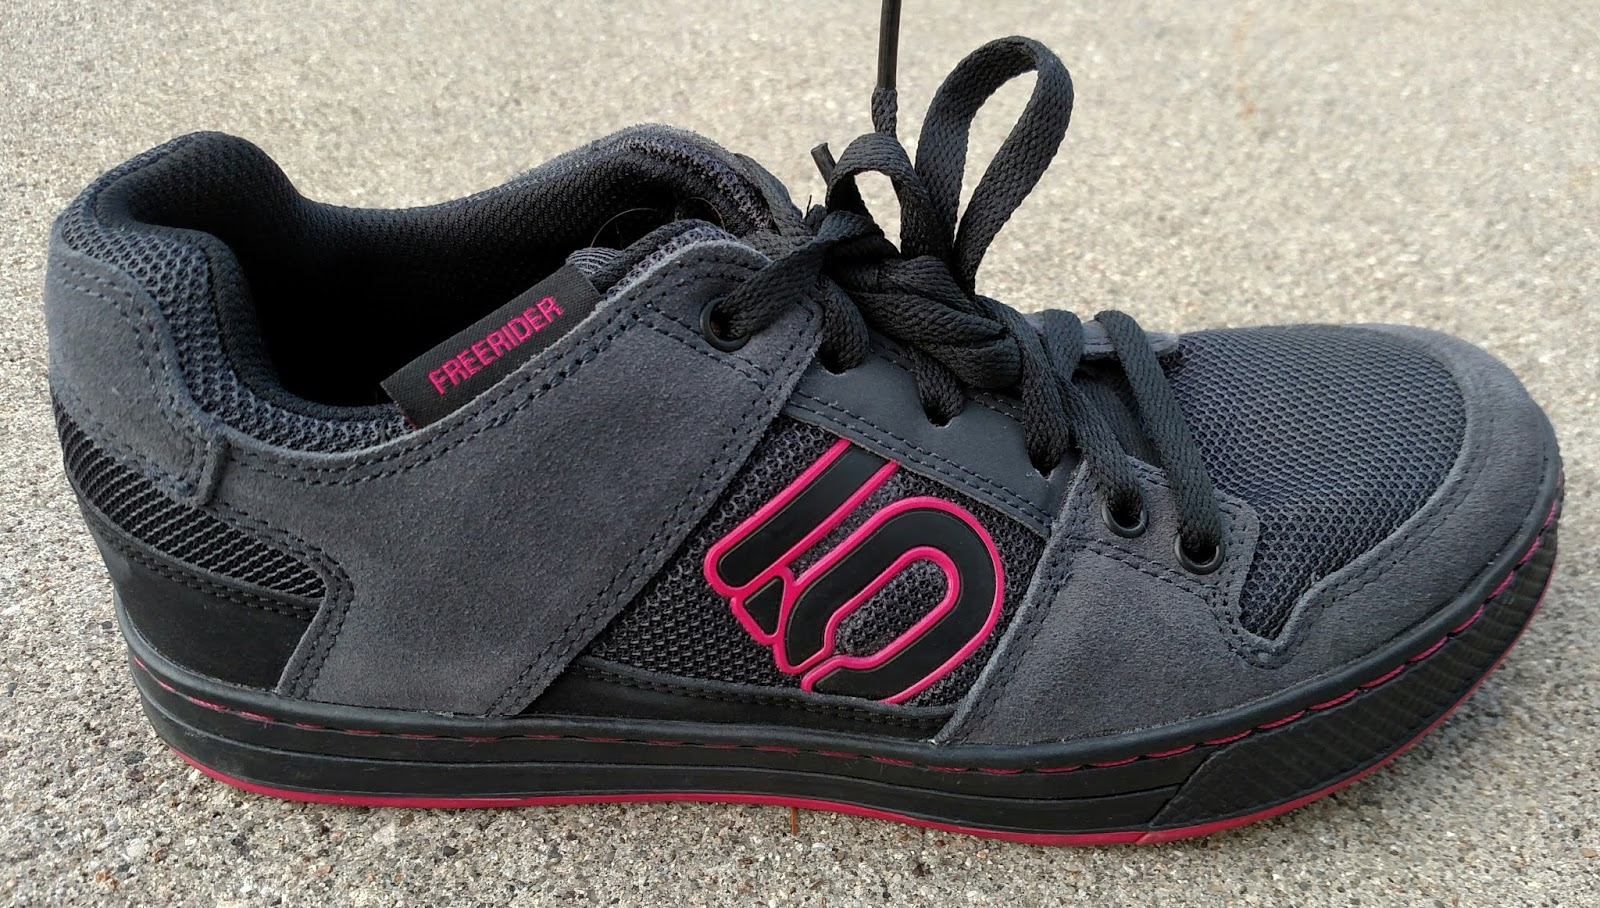 On June 1, 2018, the shoe marking experiment starts 88